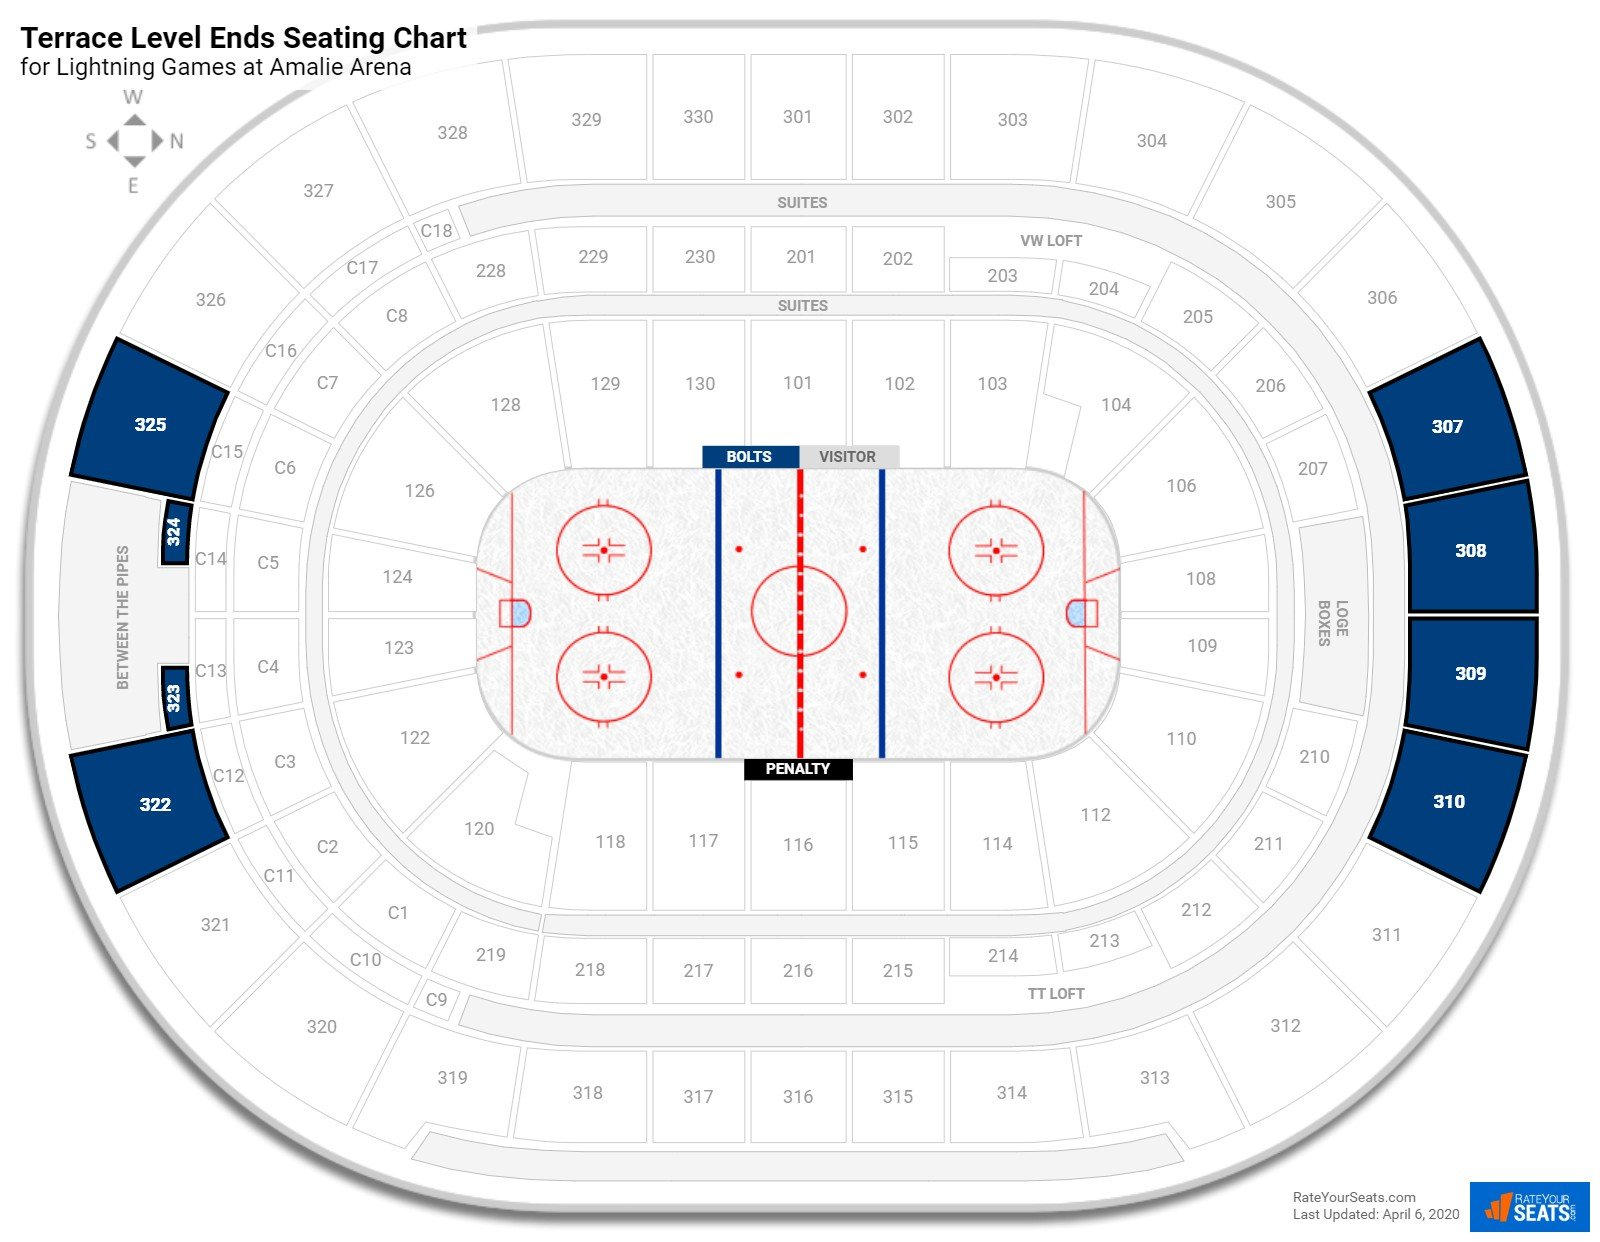 Amalie Arena Terrace Level Behind the Net seating chart